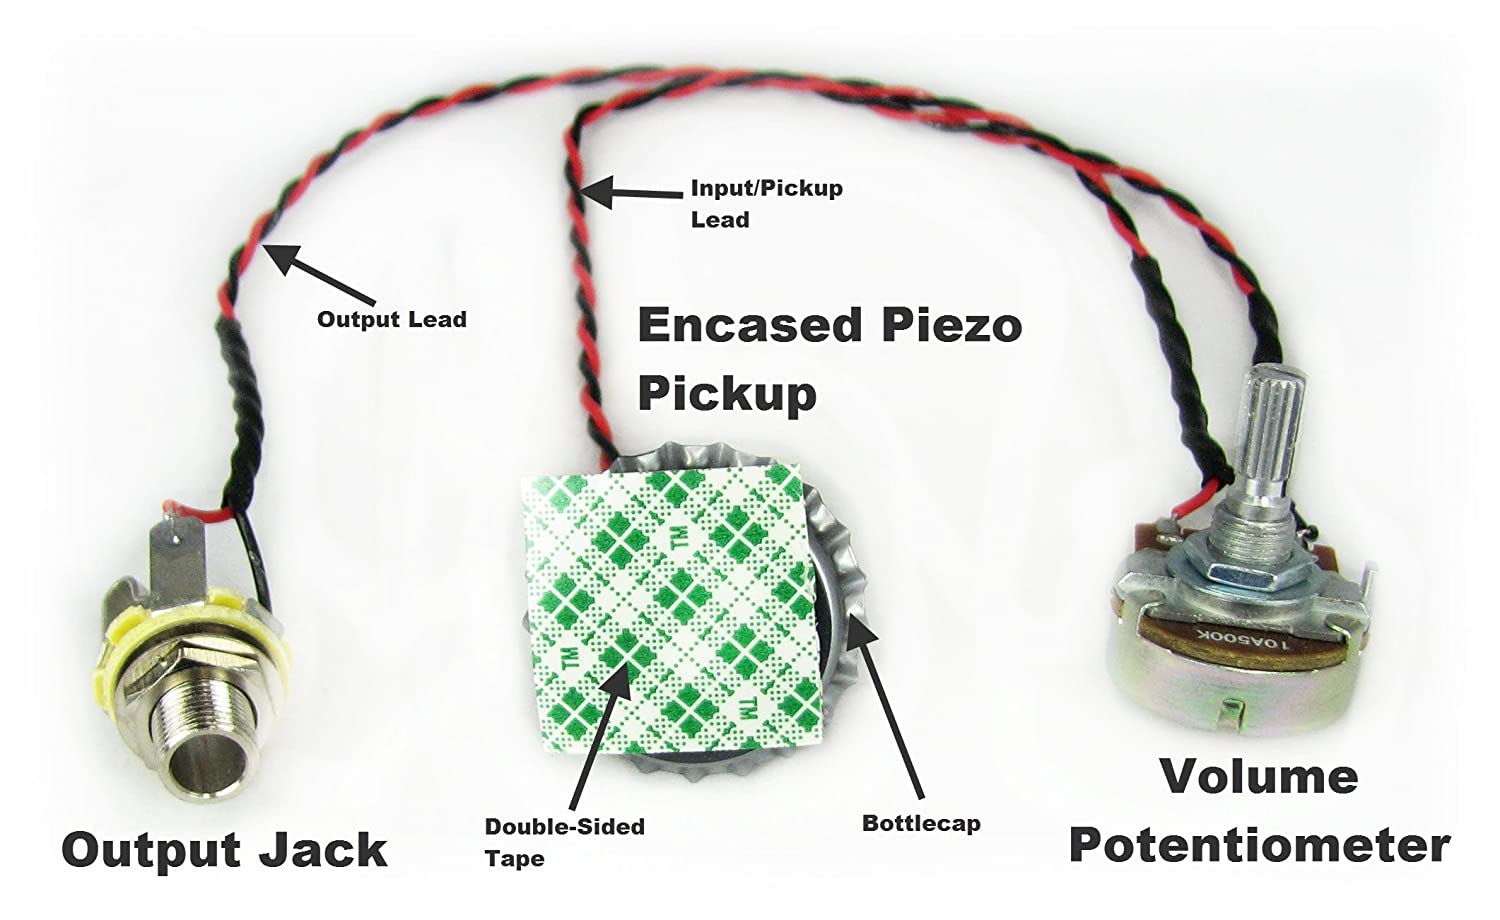 Cigar Box Guitar Parts Cap O Tone Pre Wired Bottle Help Wiring For A Single Pick Up And Volume Photos Piezo Pickup Harness With Control Musical Instruments